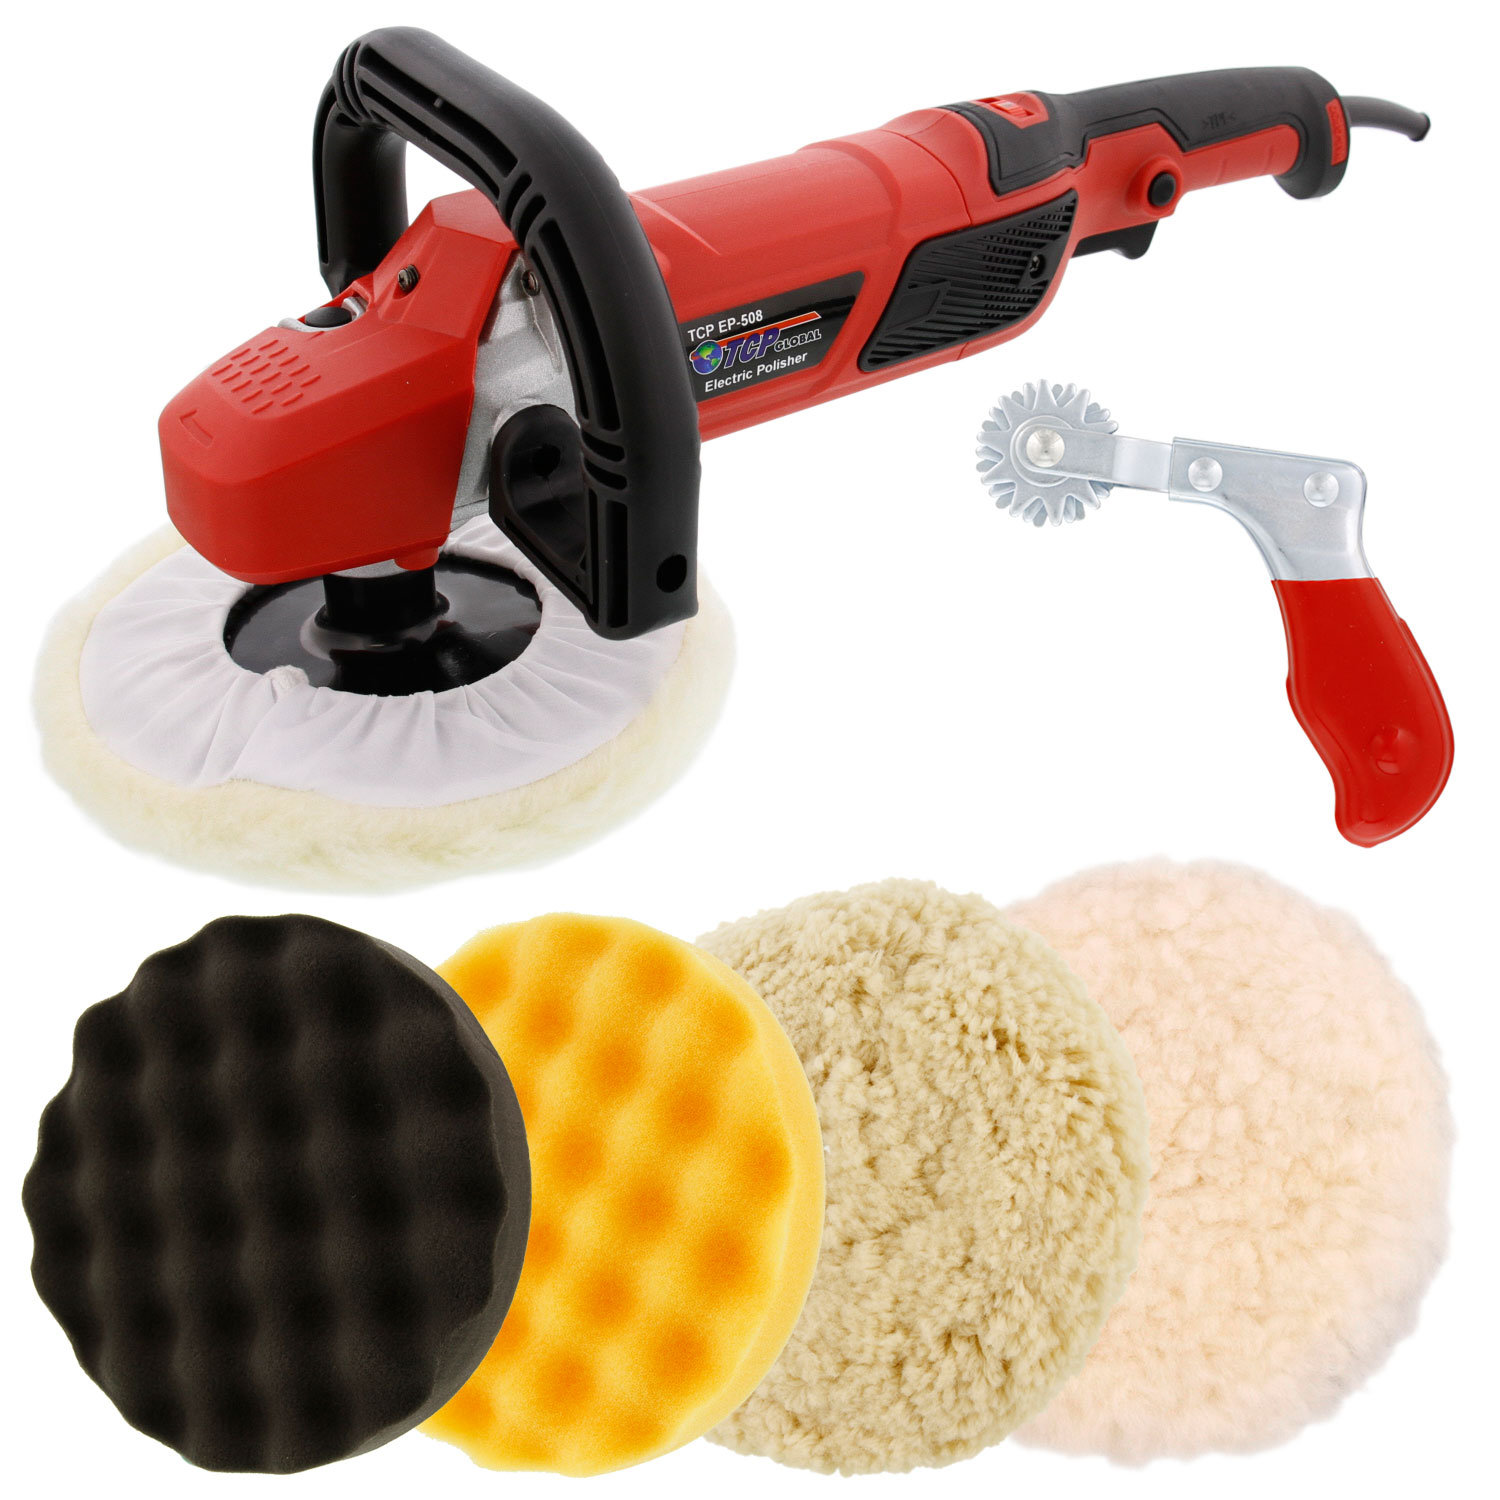 "7"" Professional High Performance Variable Speed Polisher with a 4 Pad Buffing and Polishing Kit and a Pad Cleaning Spur"